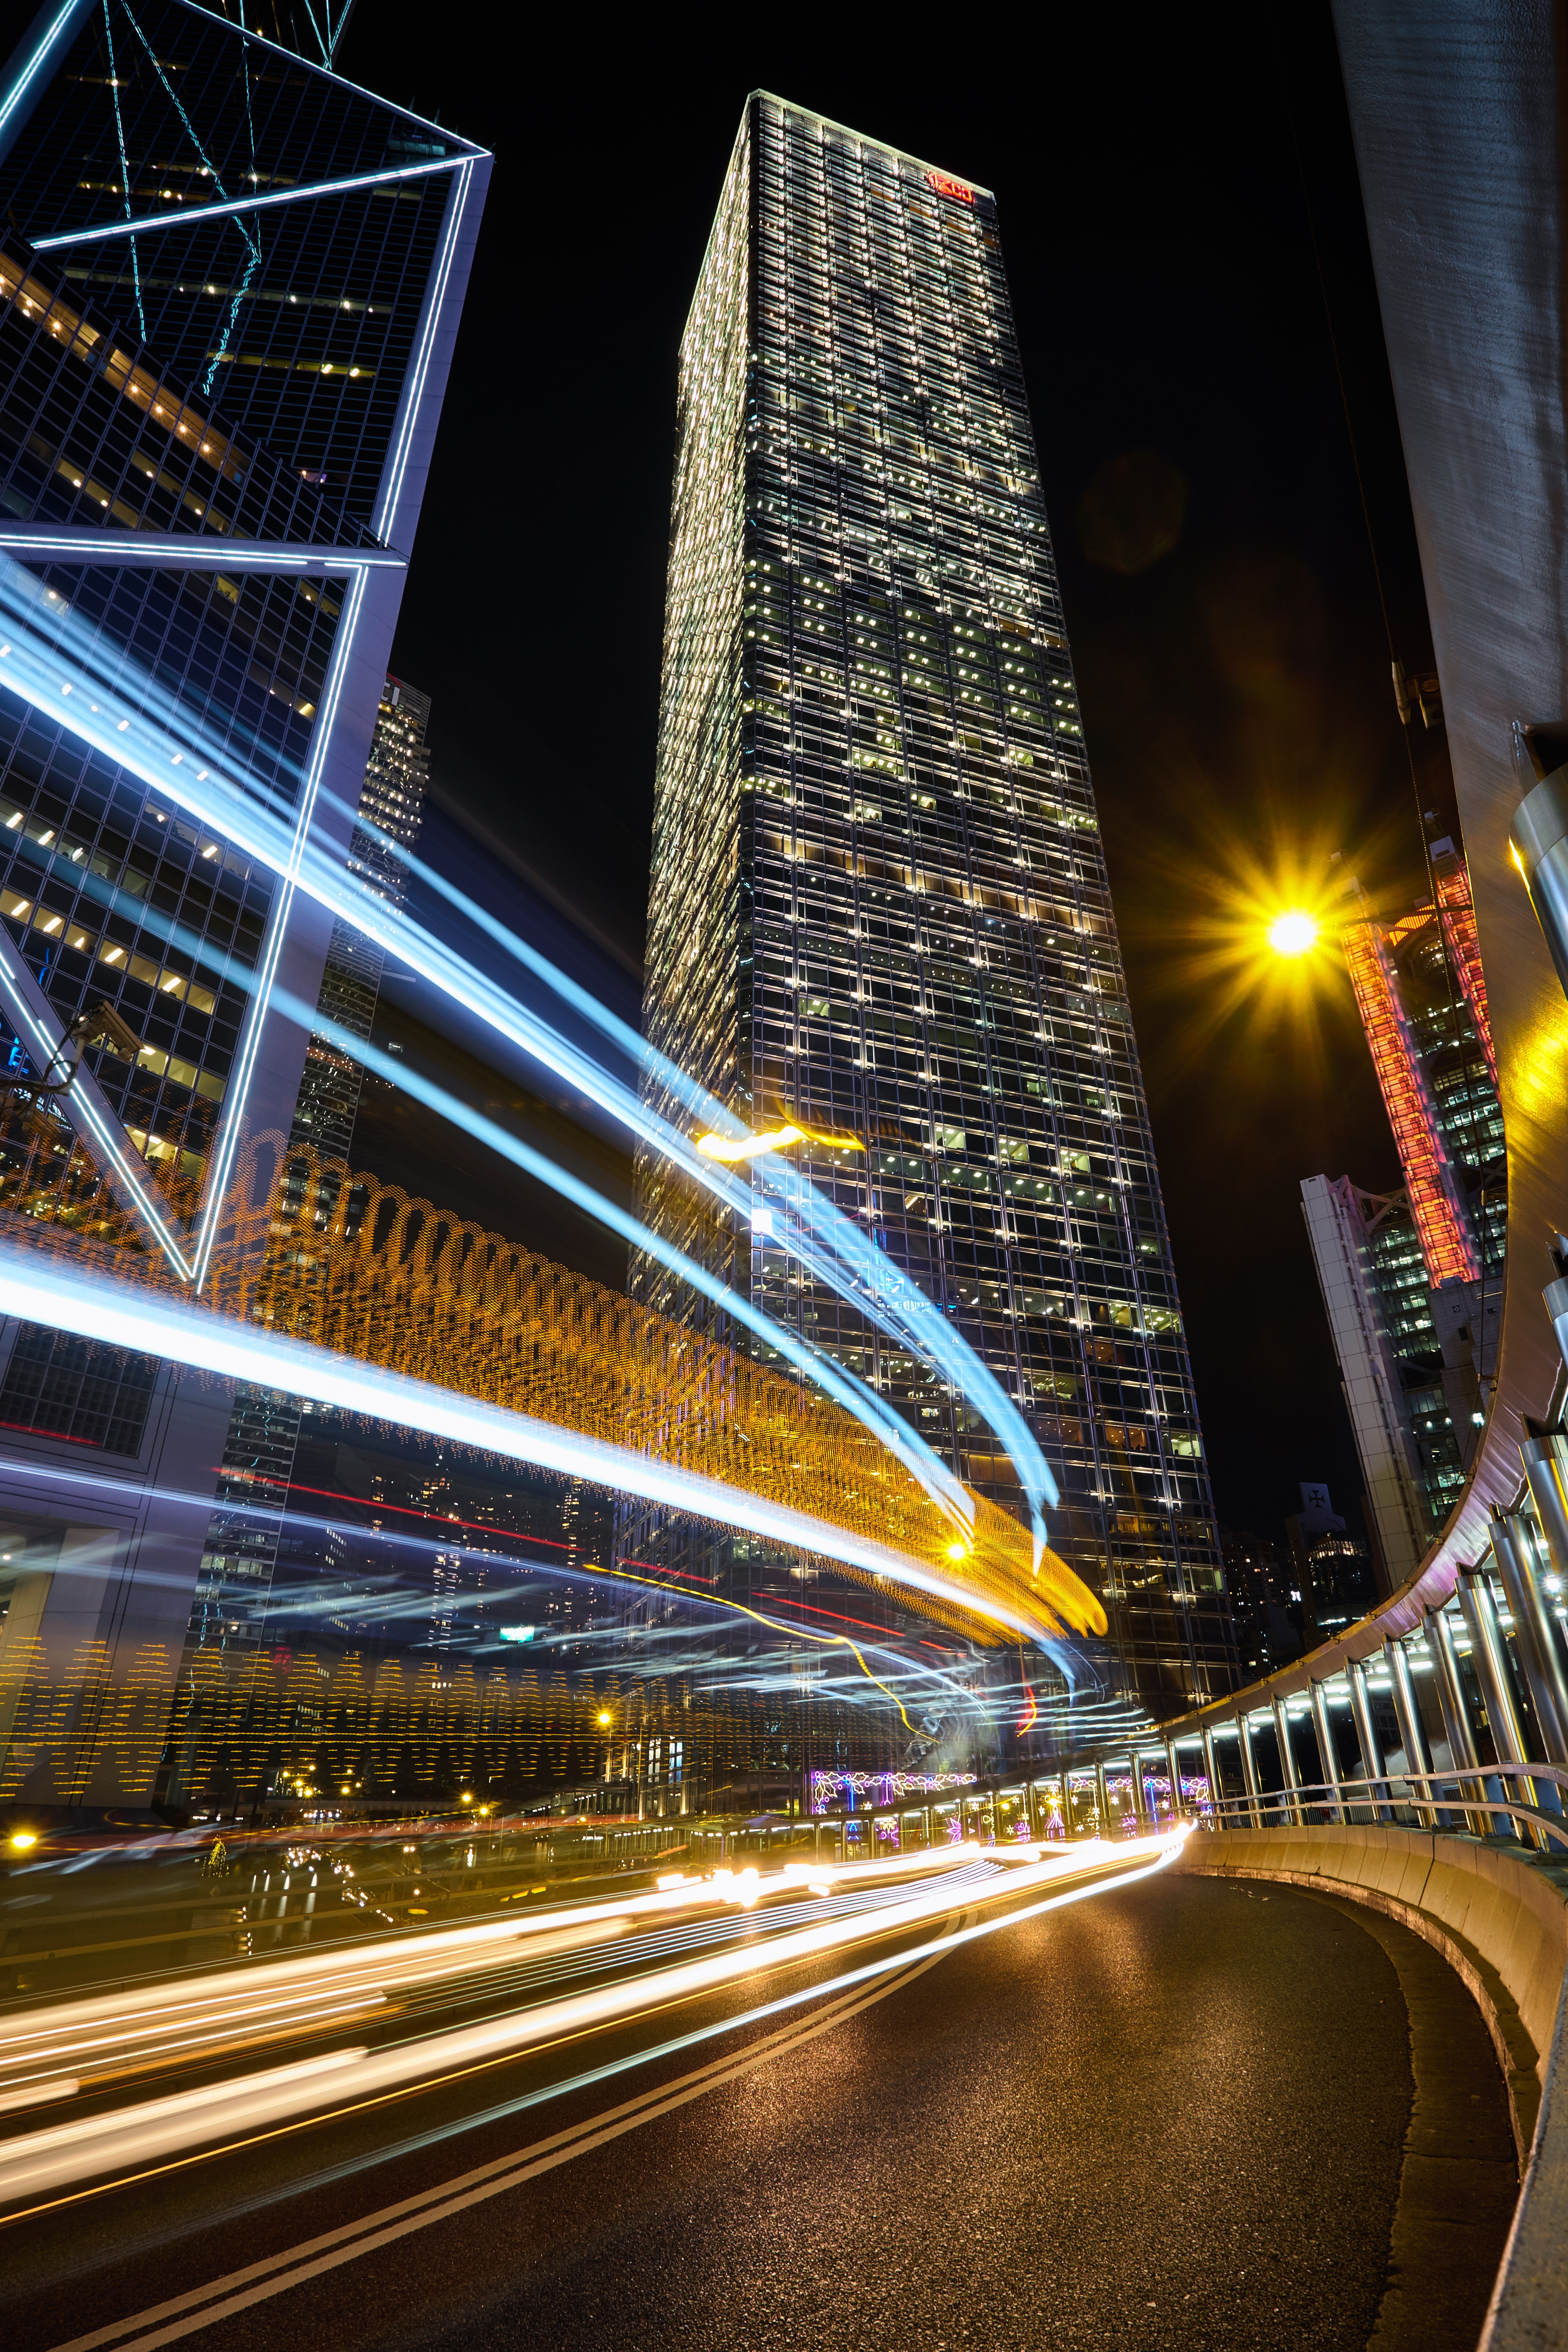 timelapse photography of high-rise building with lights